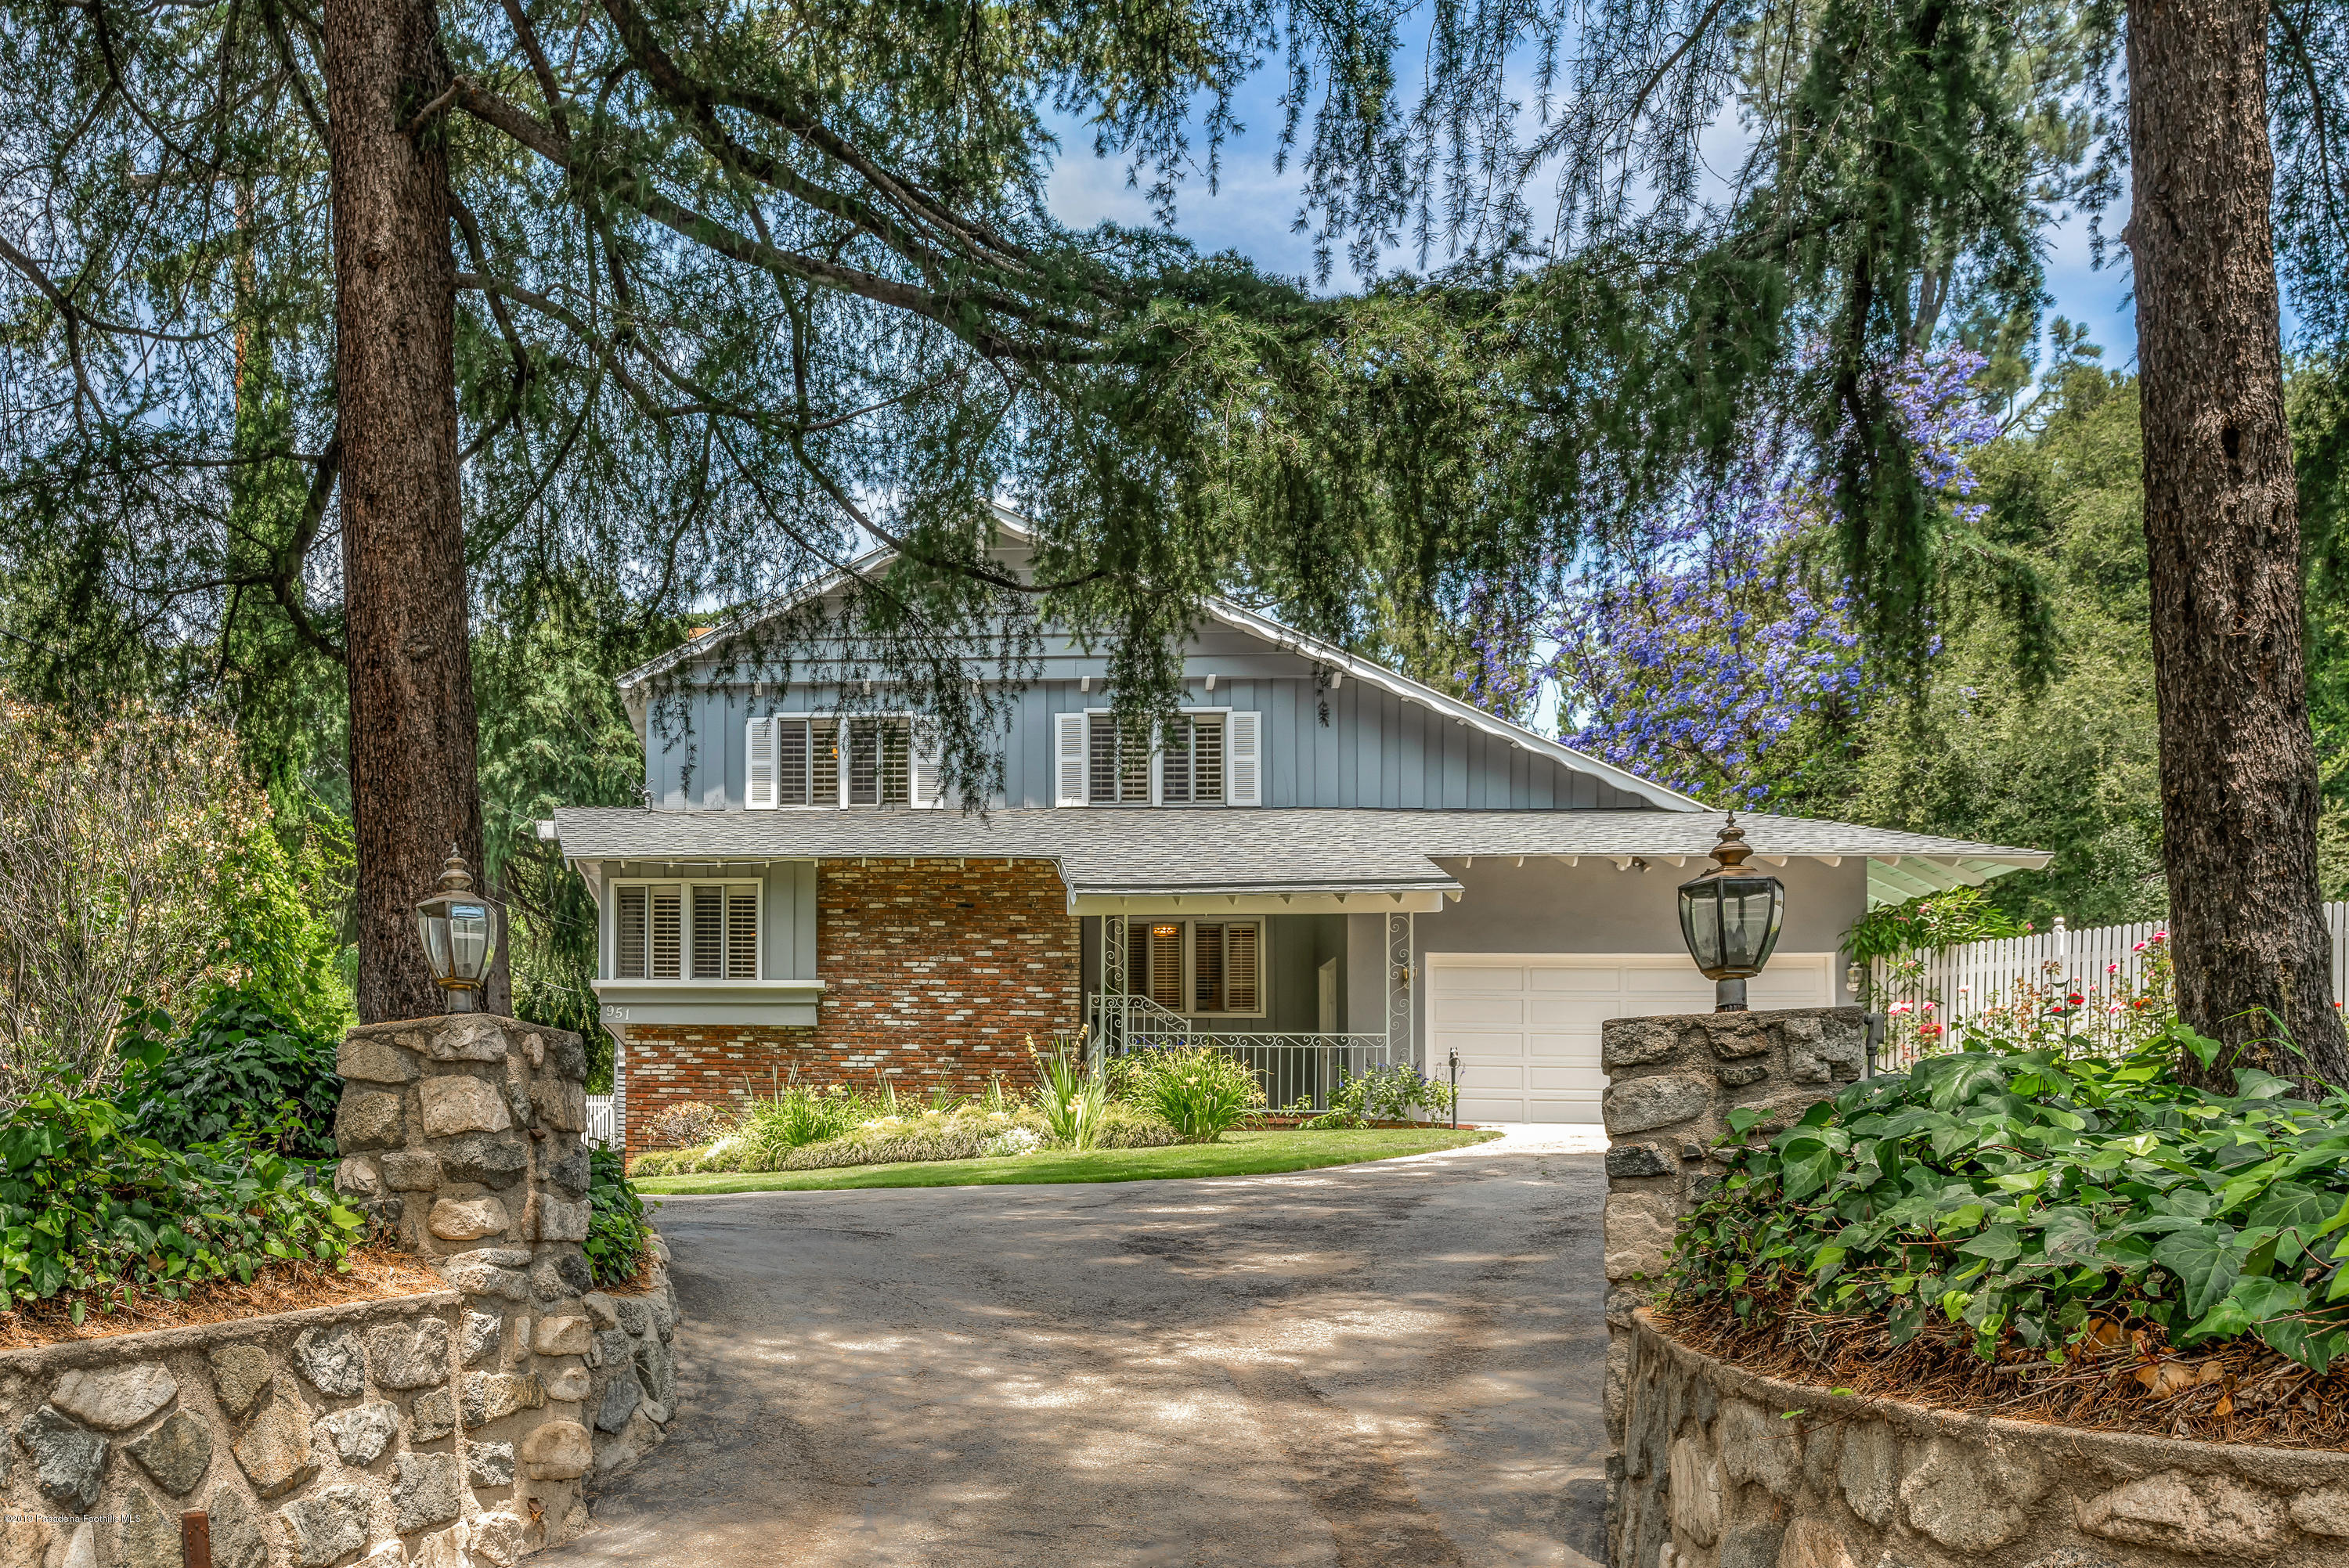 951 Vista Del Valle Road, La Canada Flintridge, California